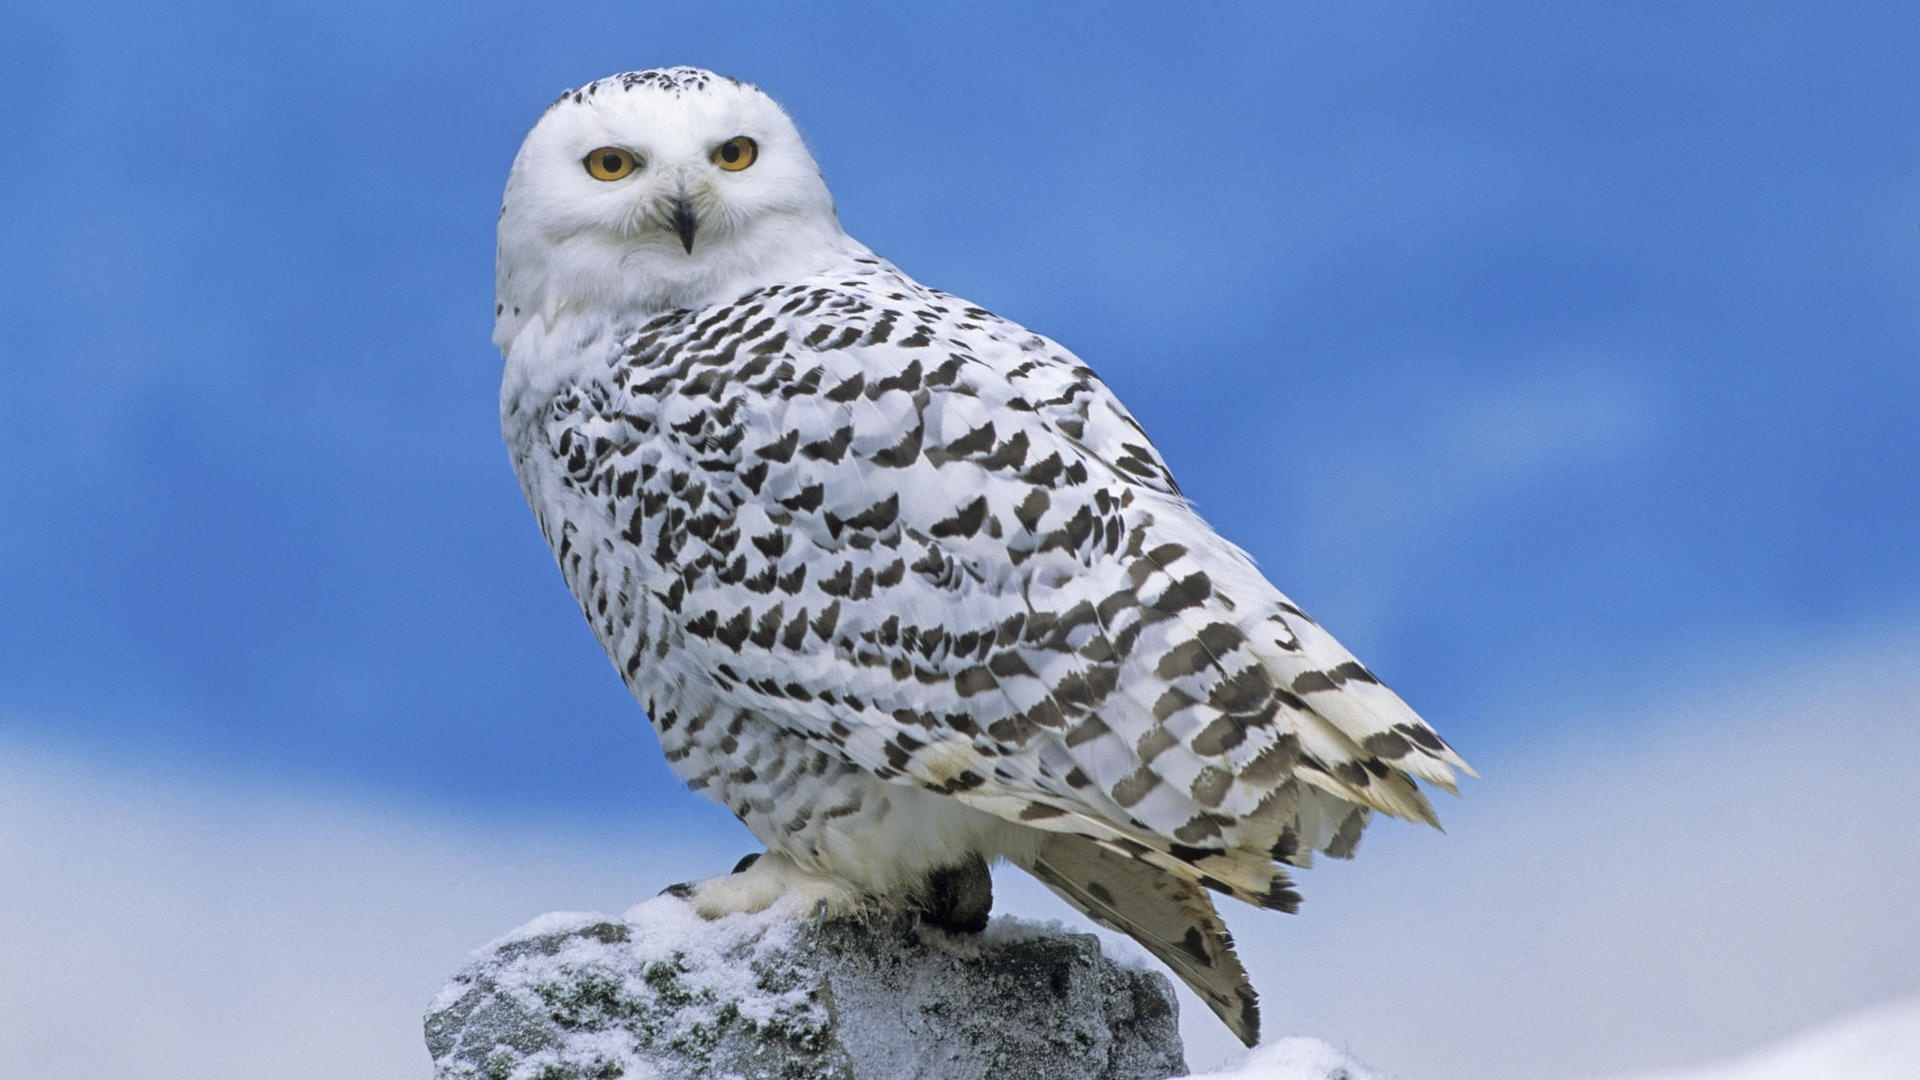 Polar Owl desktop wallpaper hd